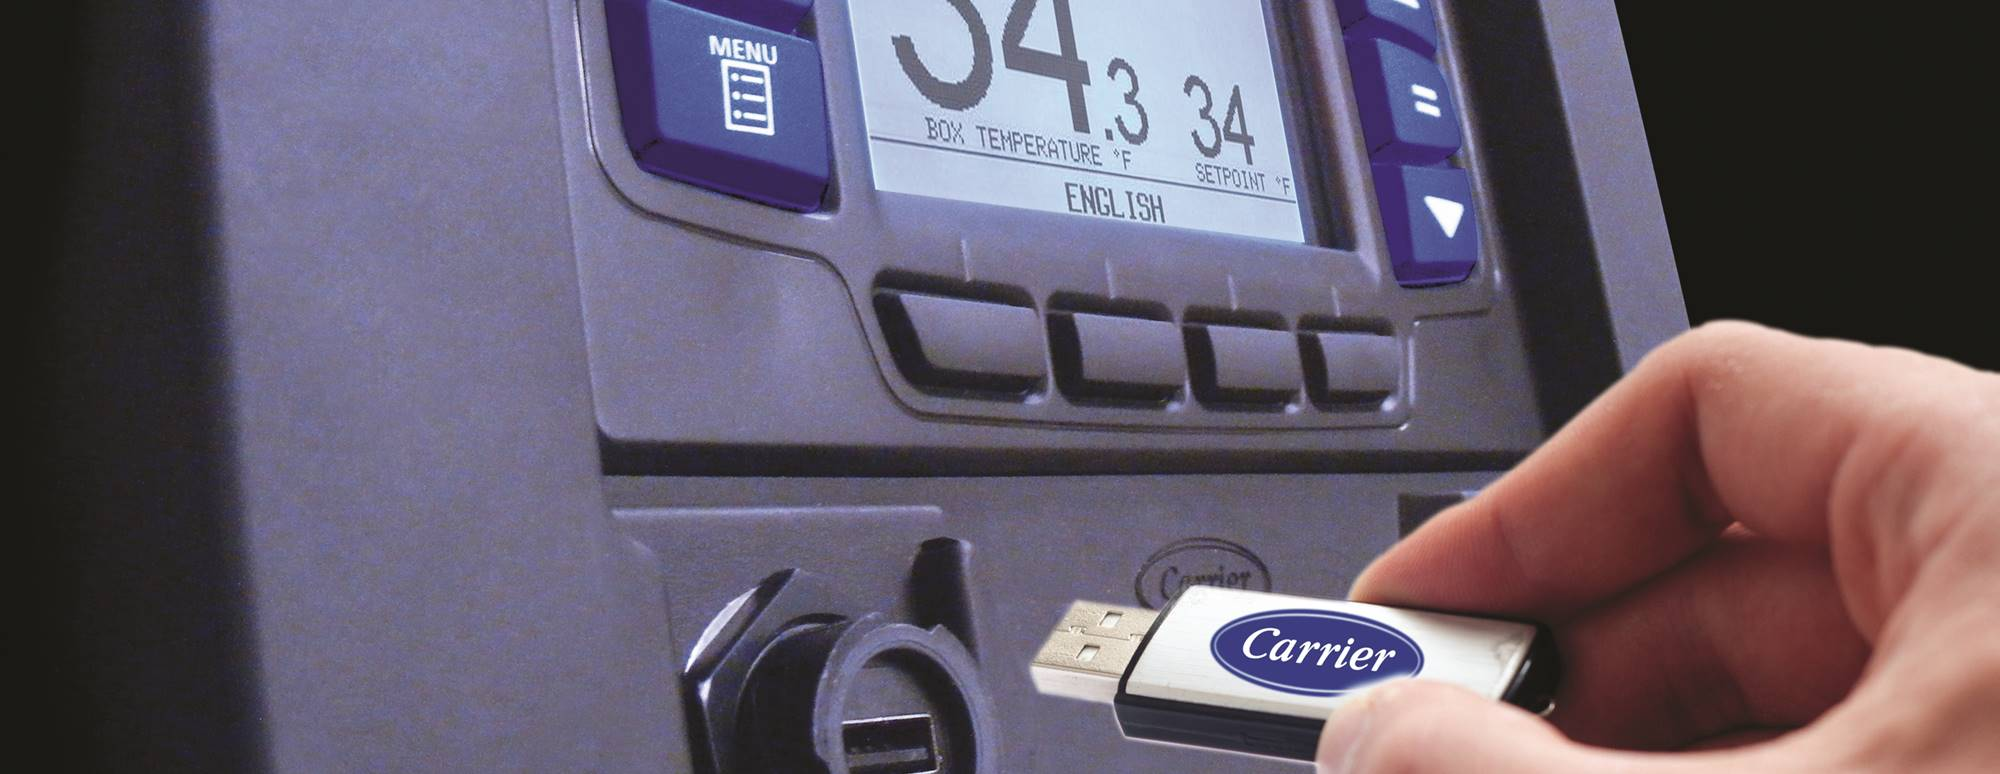 Carrier-Transicold